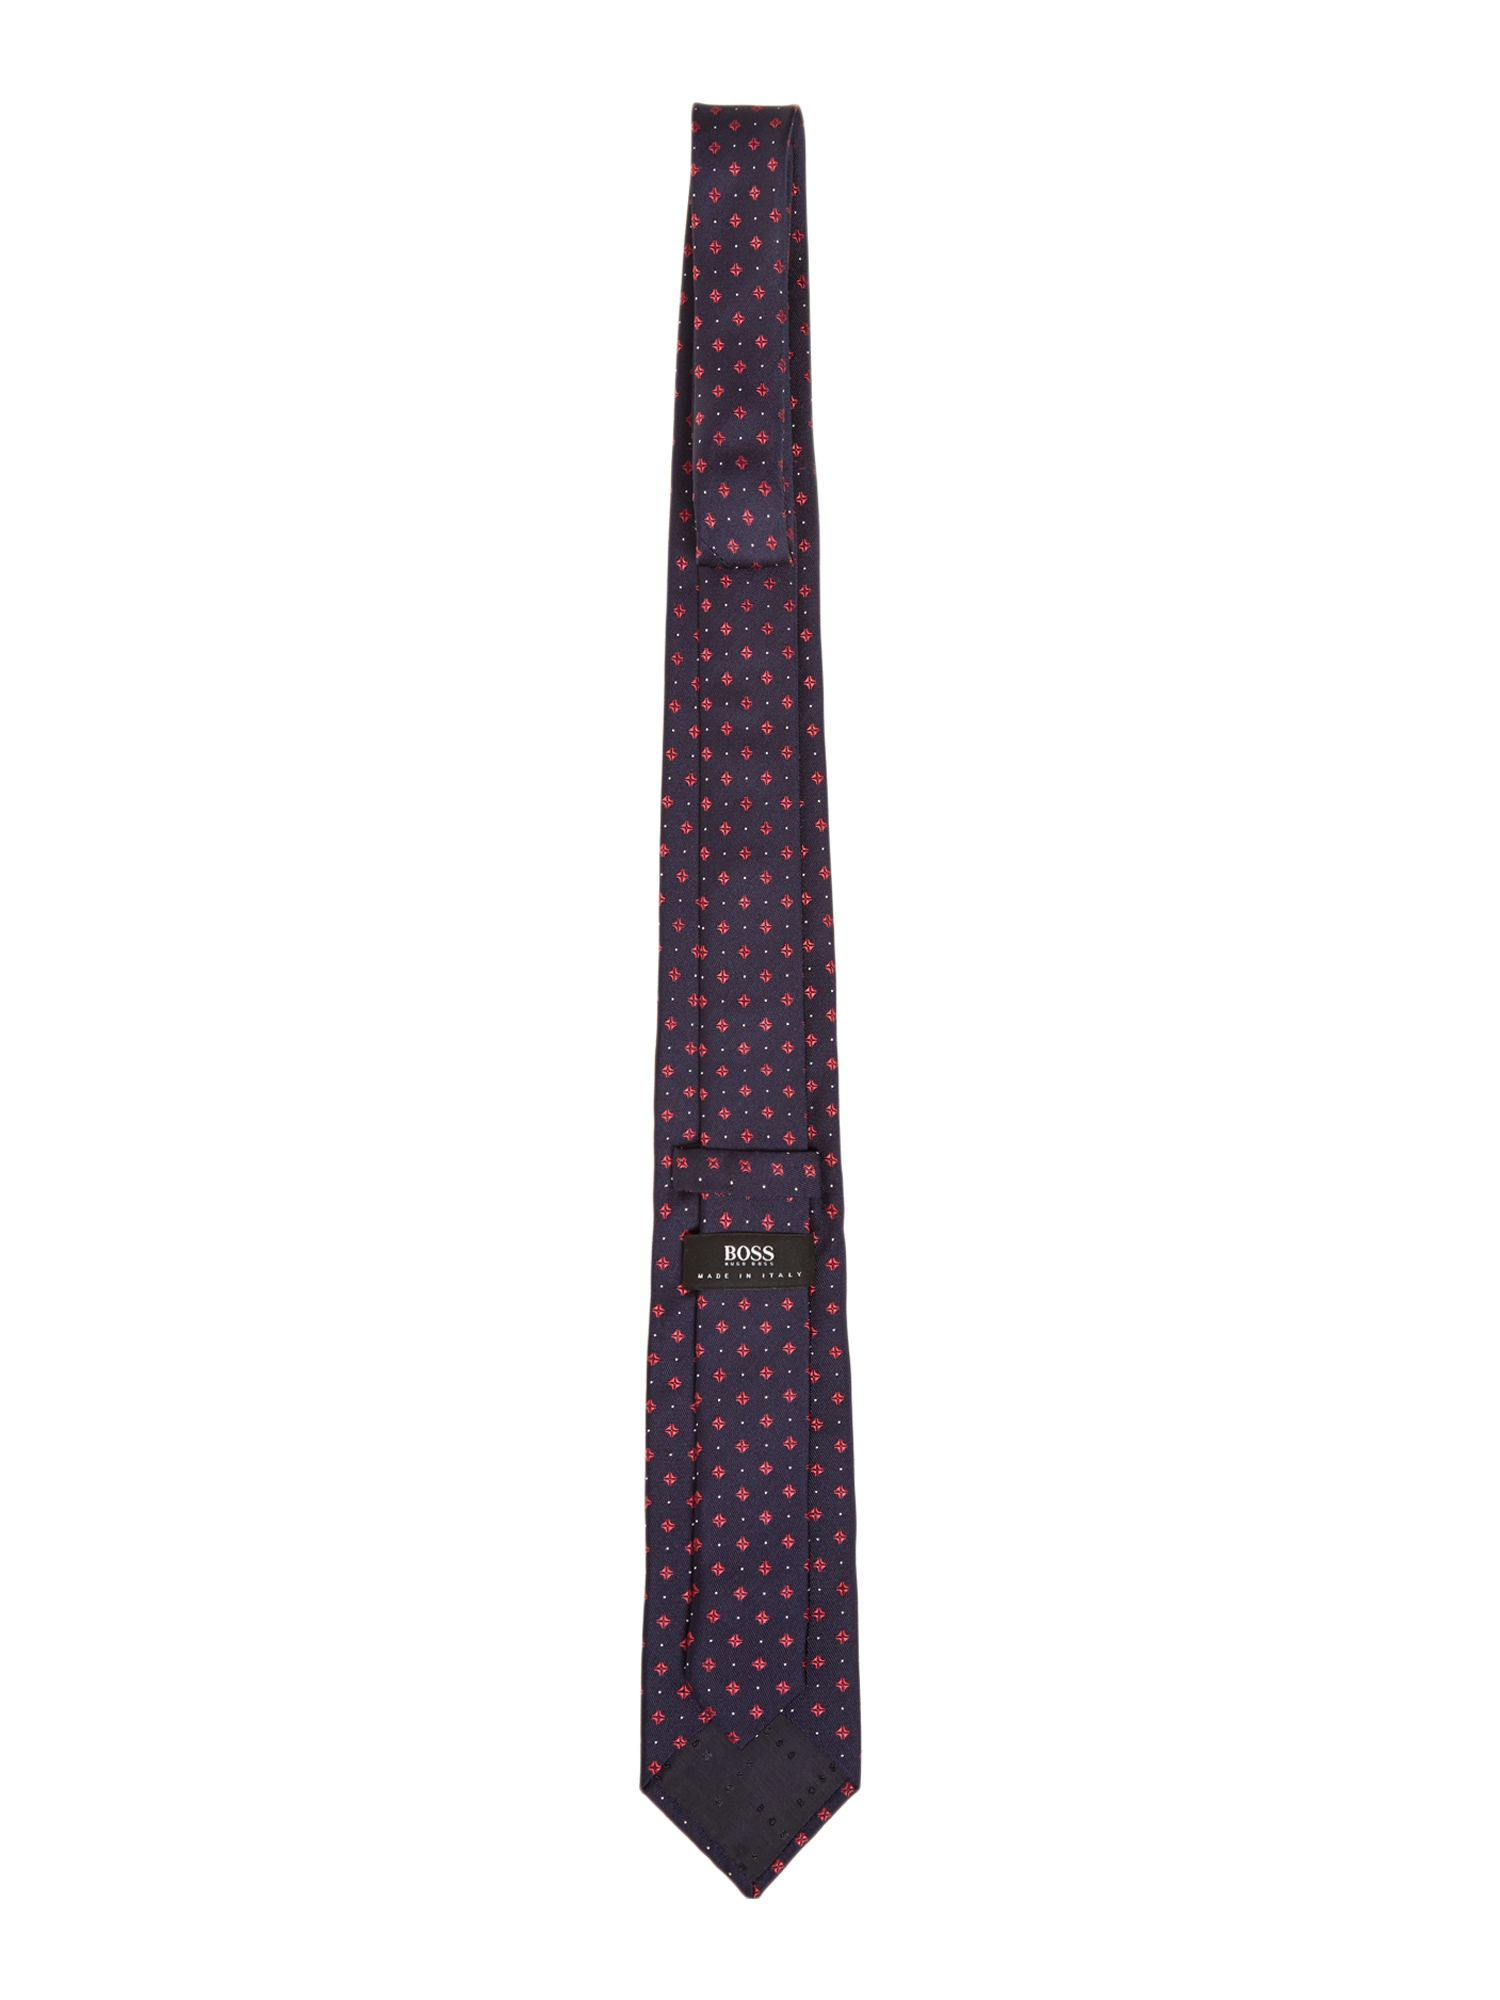 Geometric diamond tie